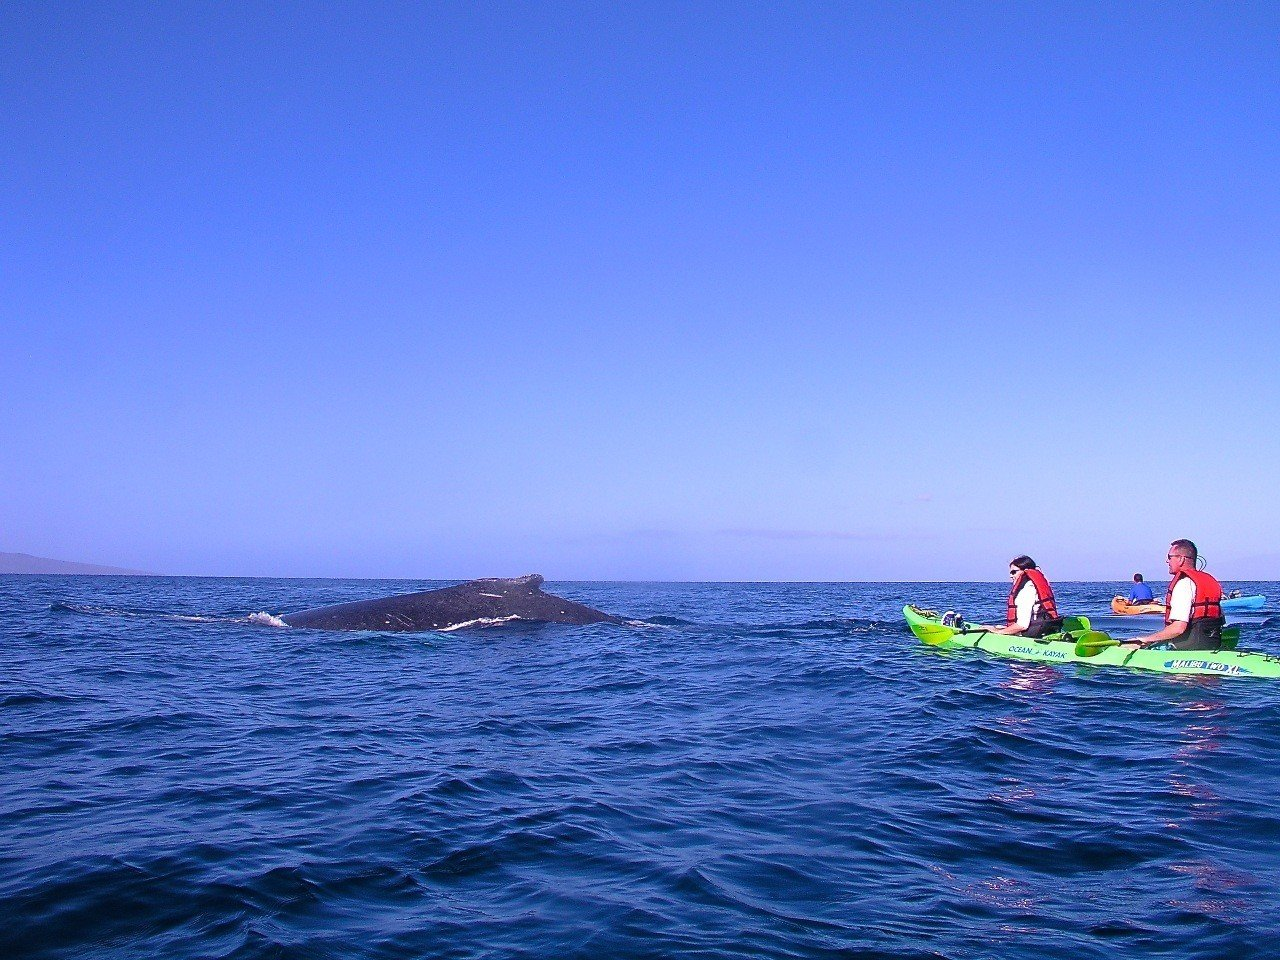 Humpback whale whale visits these kayak paddlers.